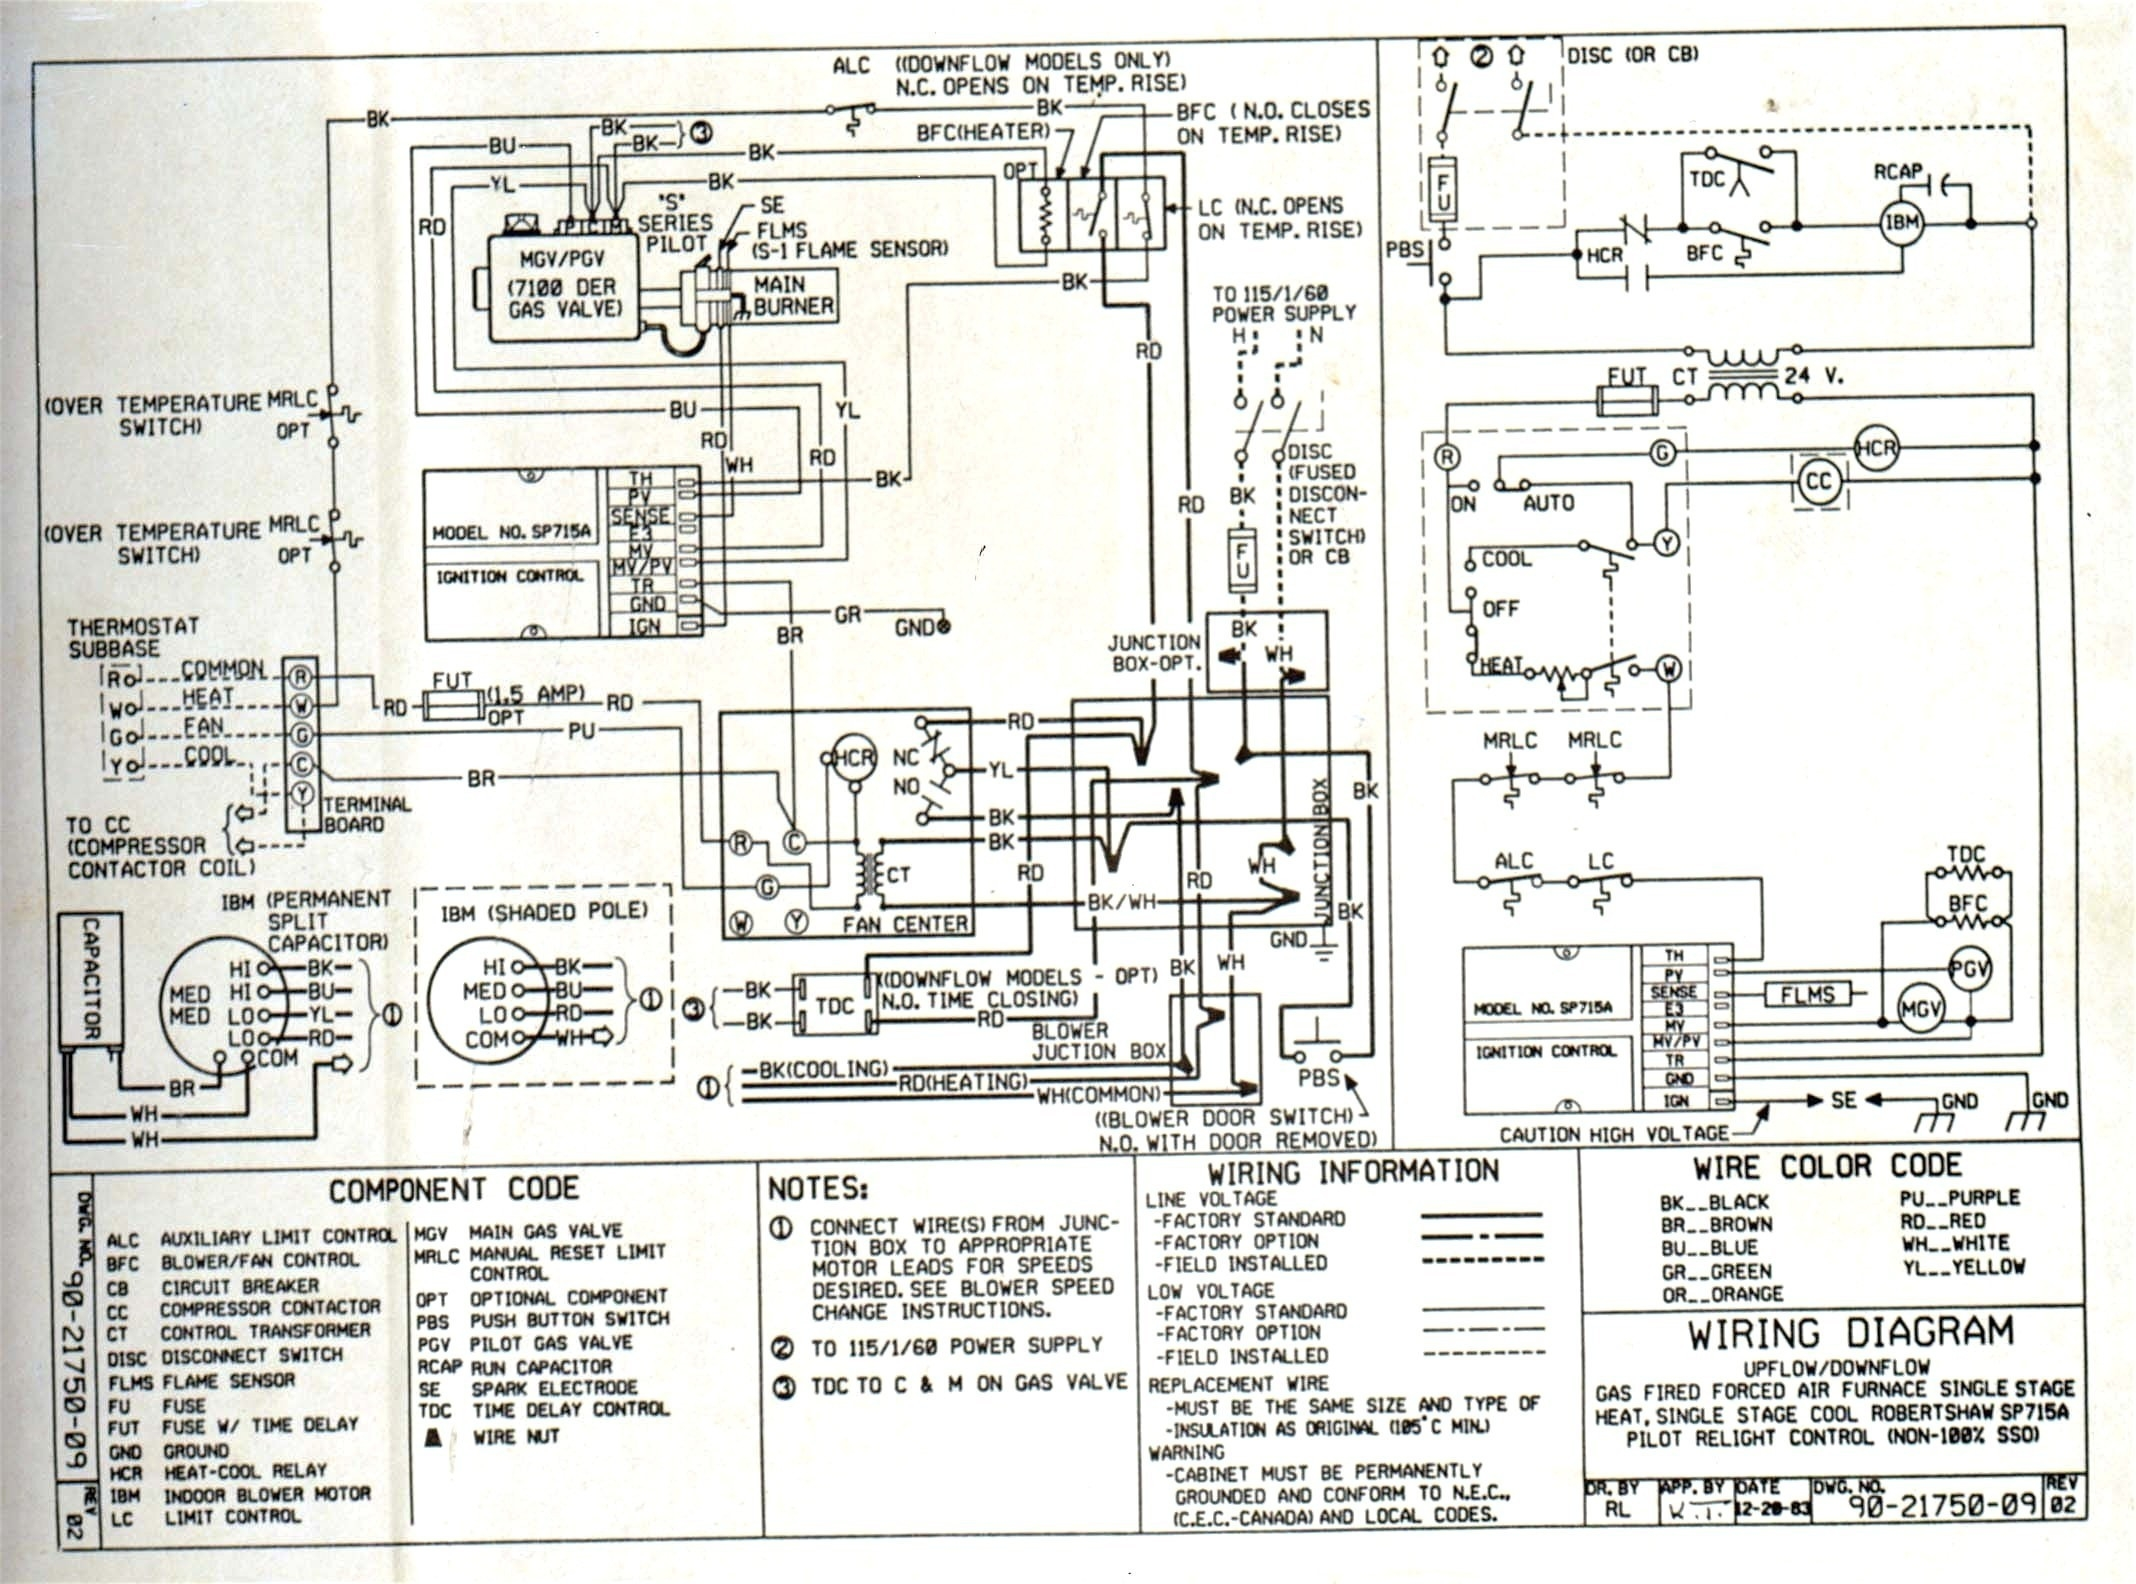 air conditioner wiring diagram Collection-Wiring Diagram for Automotive Ac New Wiring Diagram Air Conditioning Pressor Fresh Wiring Diagram Ac 3-k